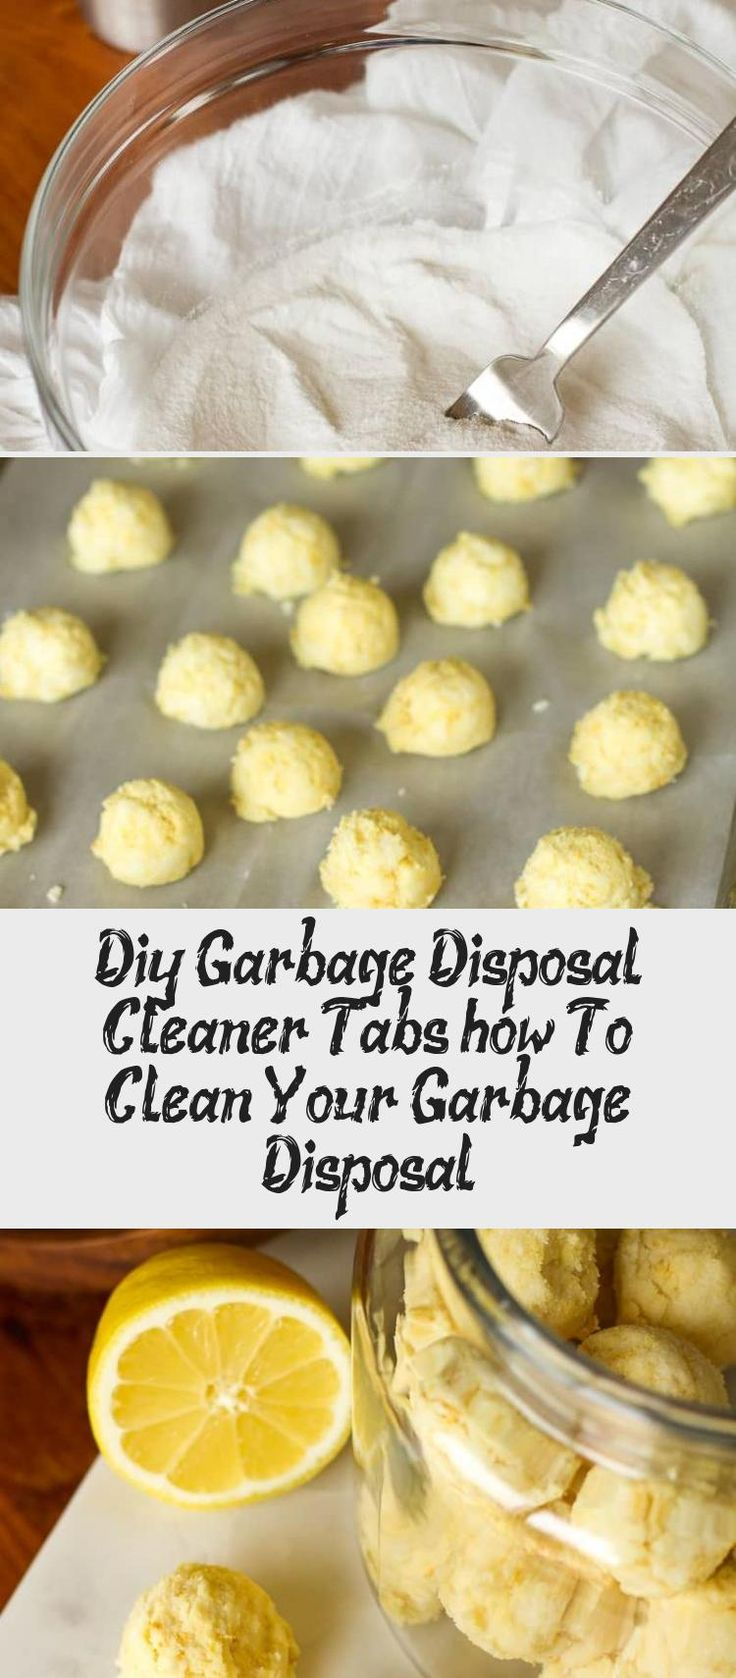 Diy garbage disposal cleaner tabs how to clean your